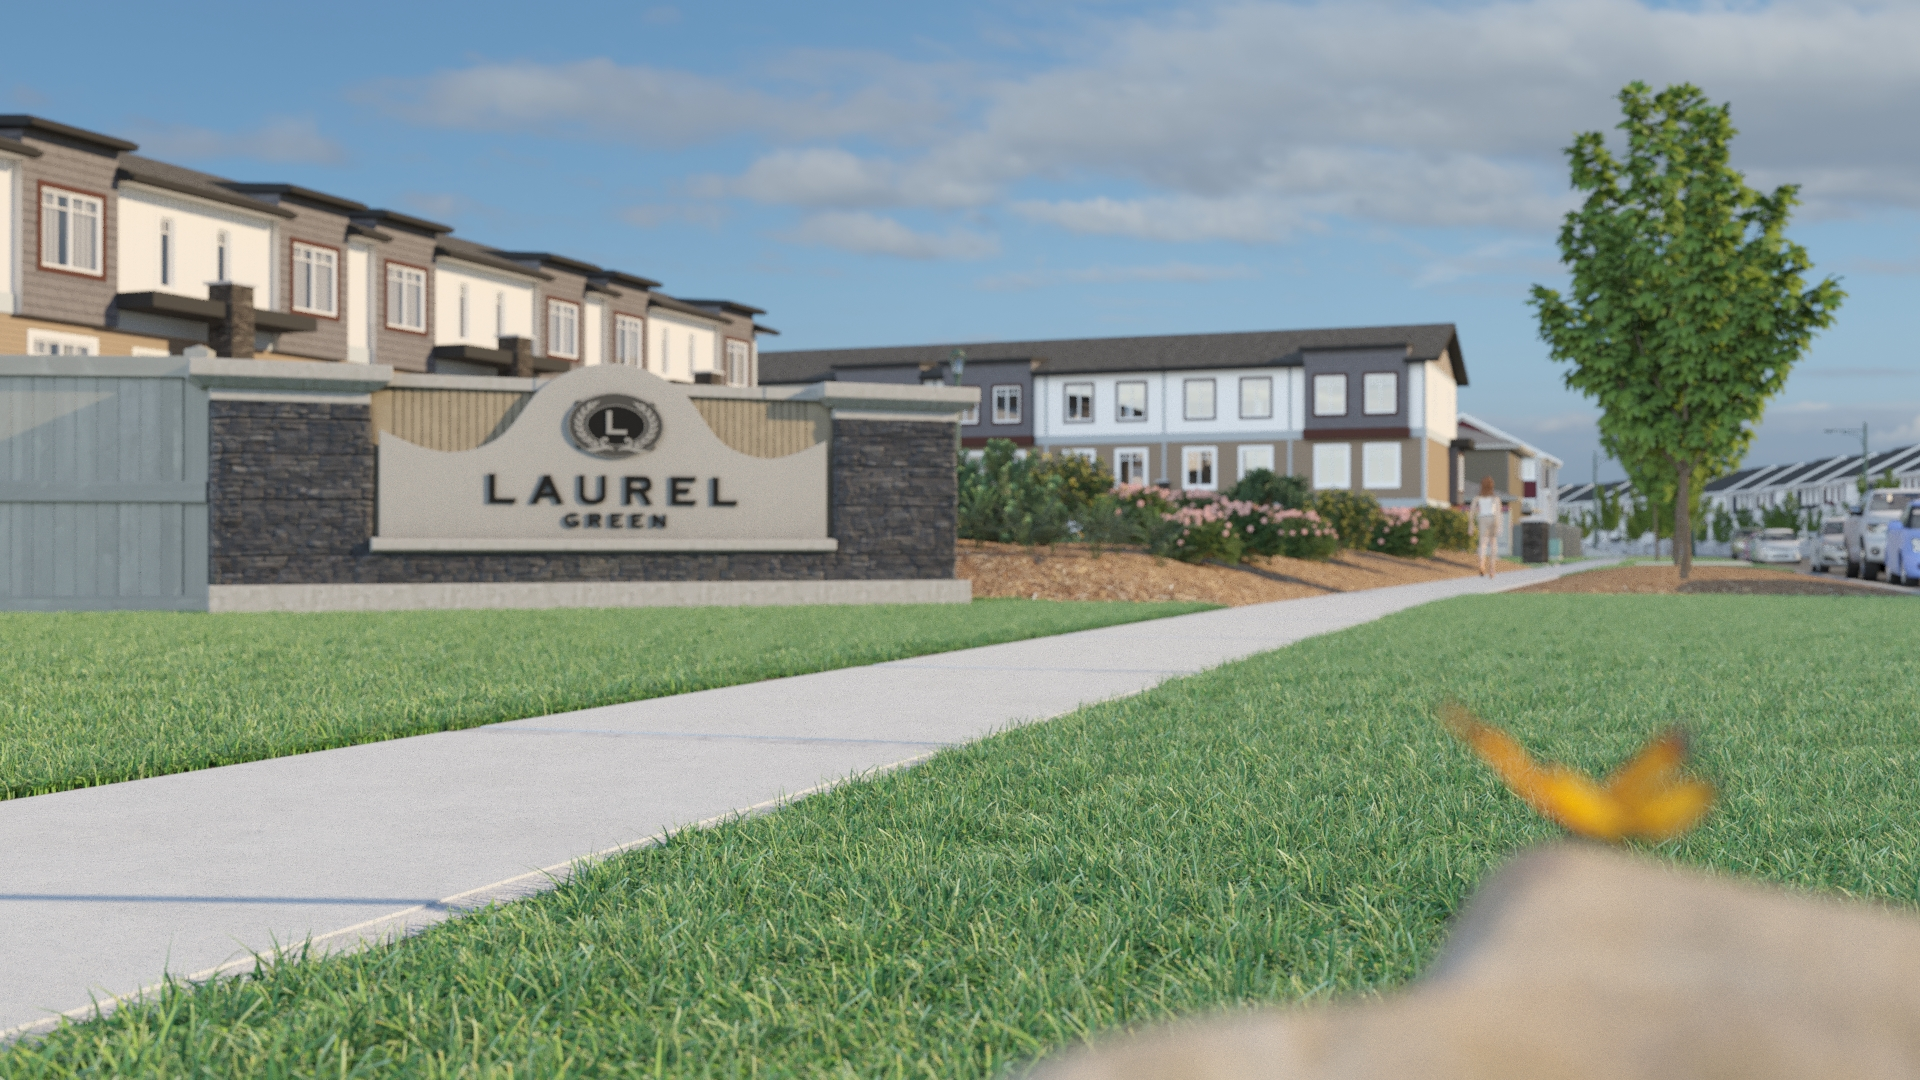 A virtual tour of Laurel green. This tour highlights the unique green way design. To see on the headset  click here .